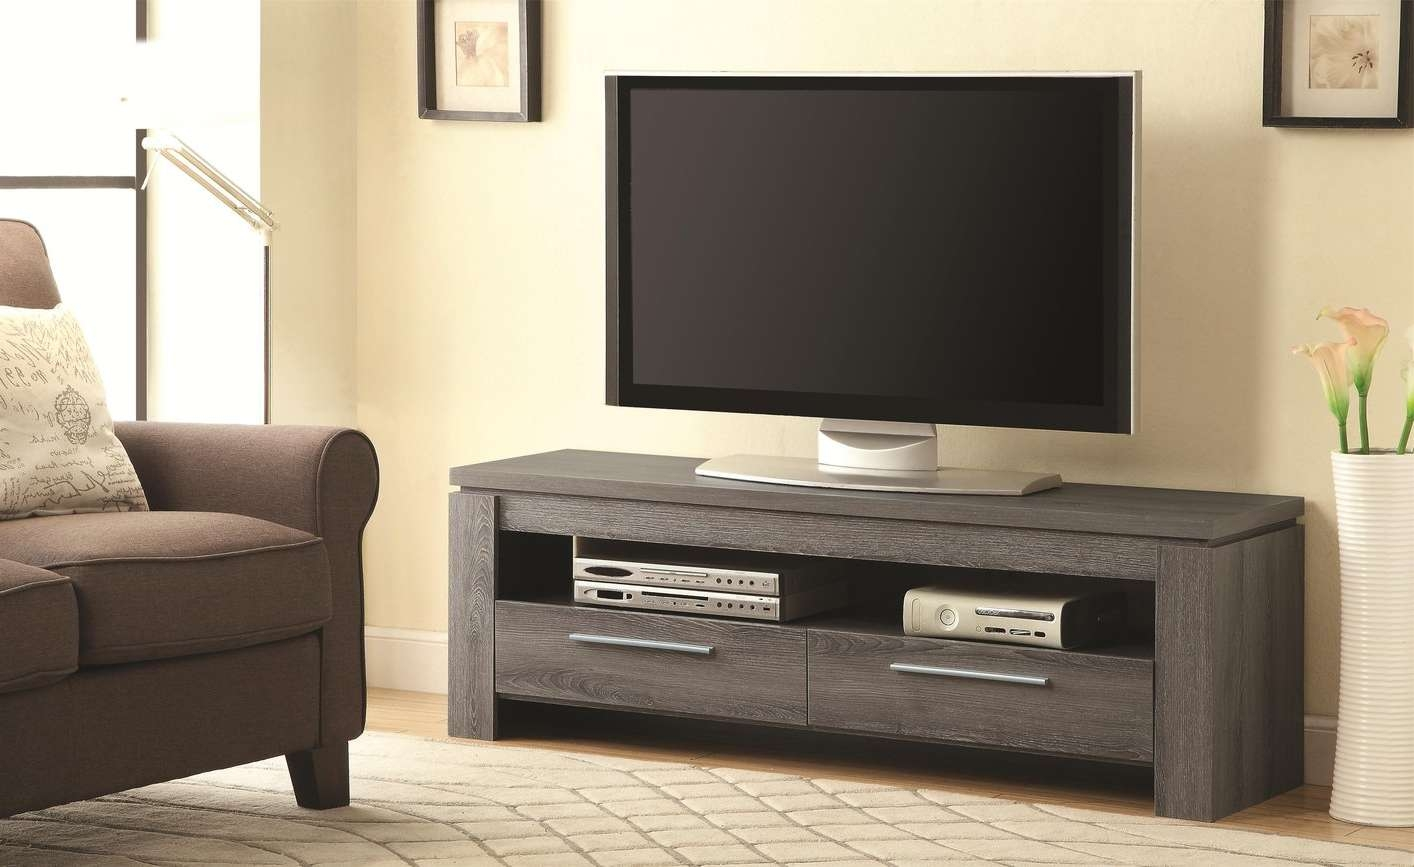 Grey Wood Tv Stand – Steal A Sofa Furniture Outlet Los Angeles Ca Within Wooden Tv Cabinets (View 11 of 20)